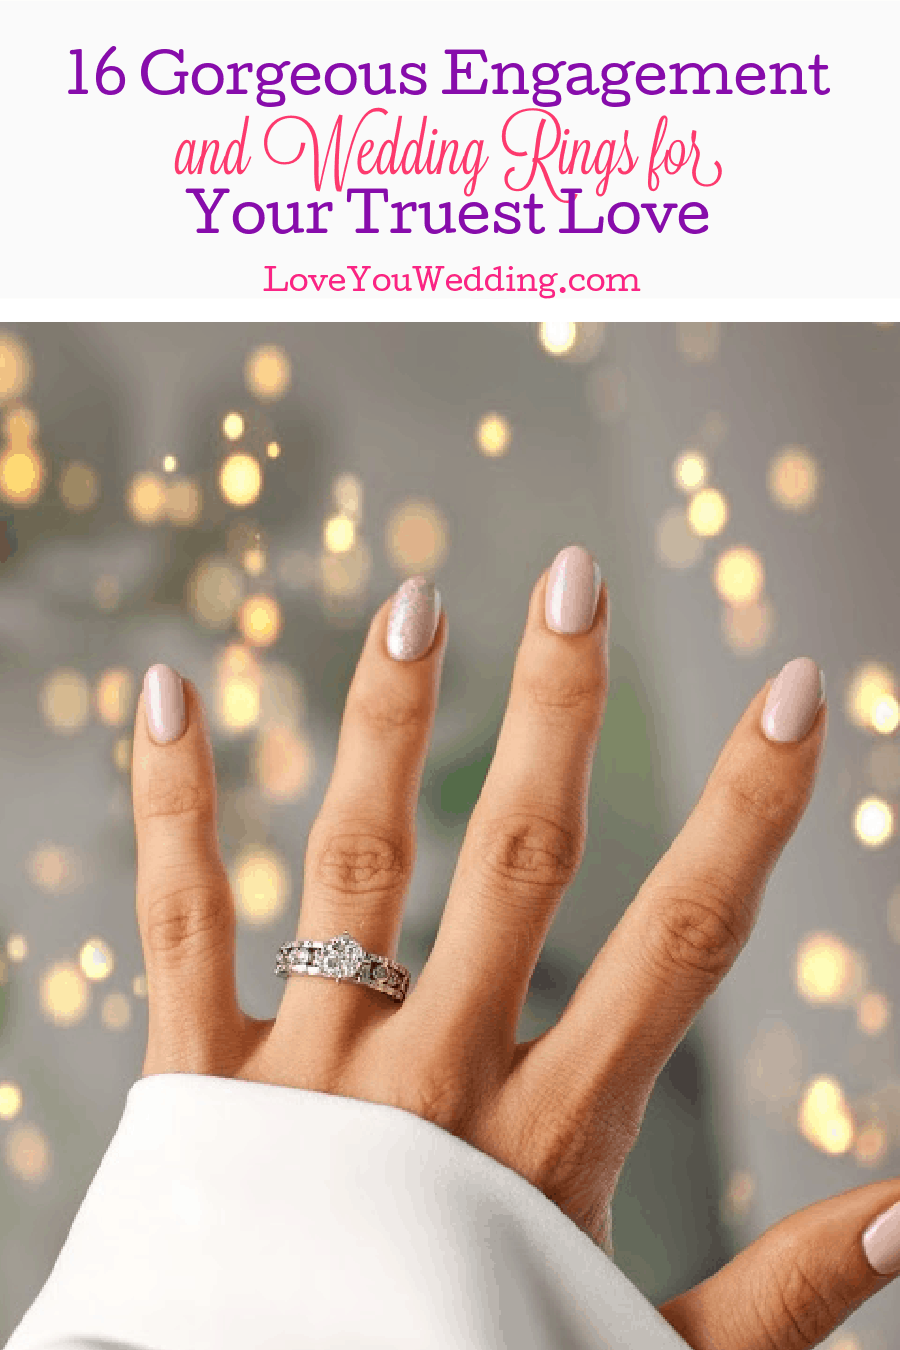 Looking for some gorgeous engagement and wedding rings to give to your true love? Check out 16 unique & creative designs we adore!